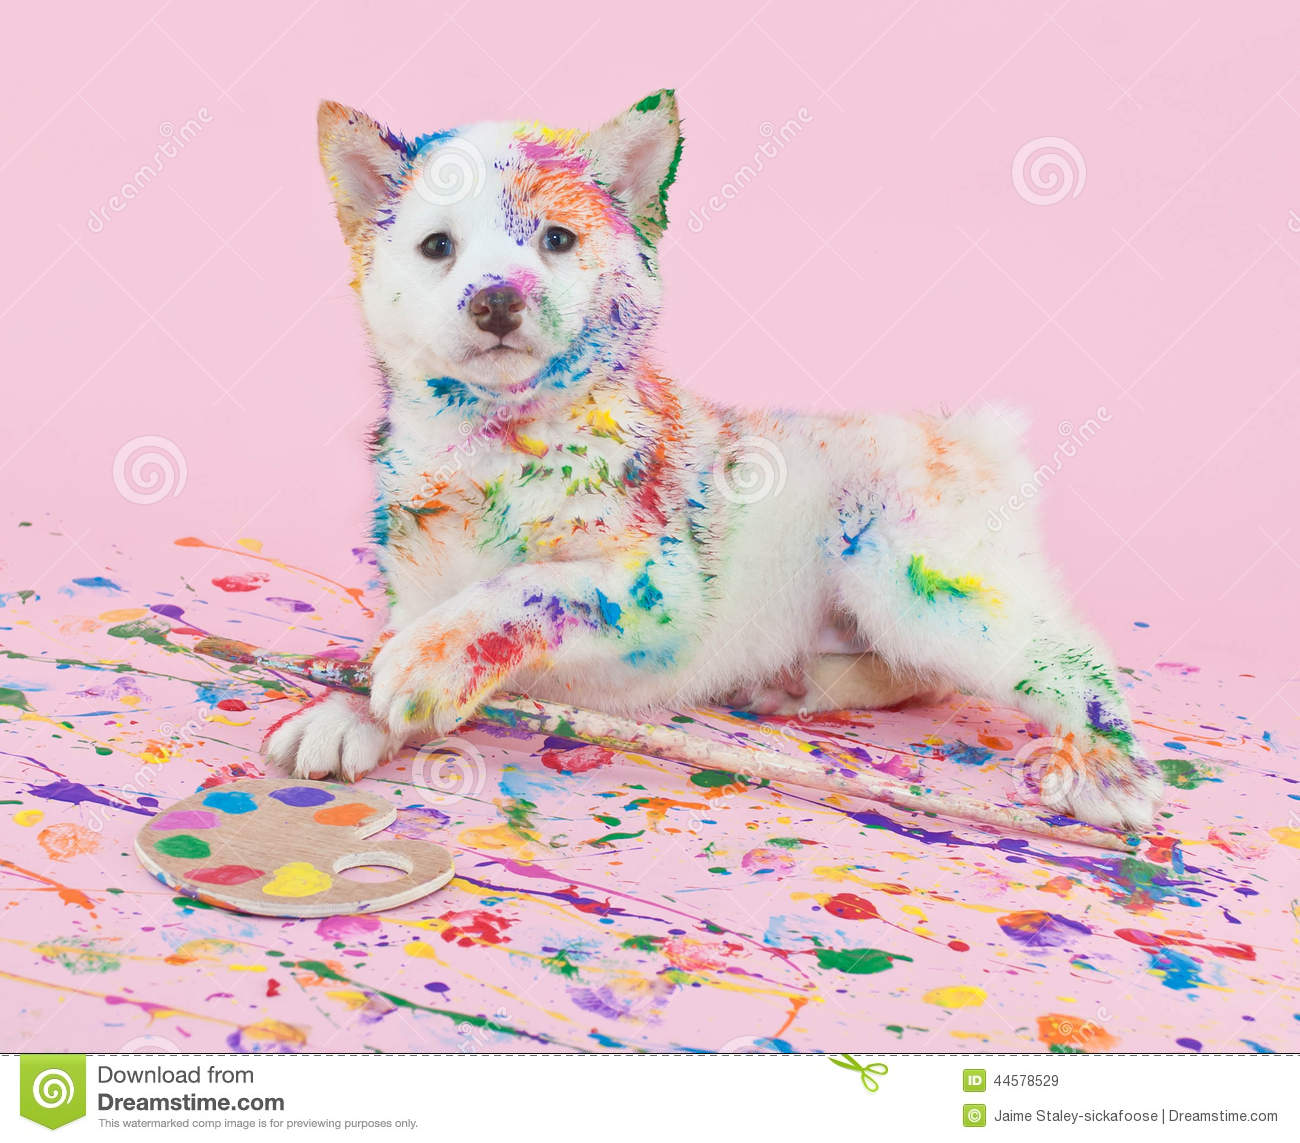 How To Make Dog Print Paint